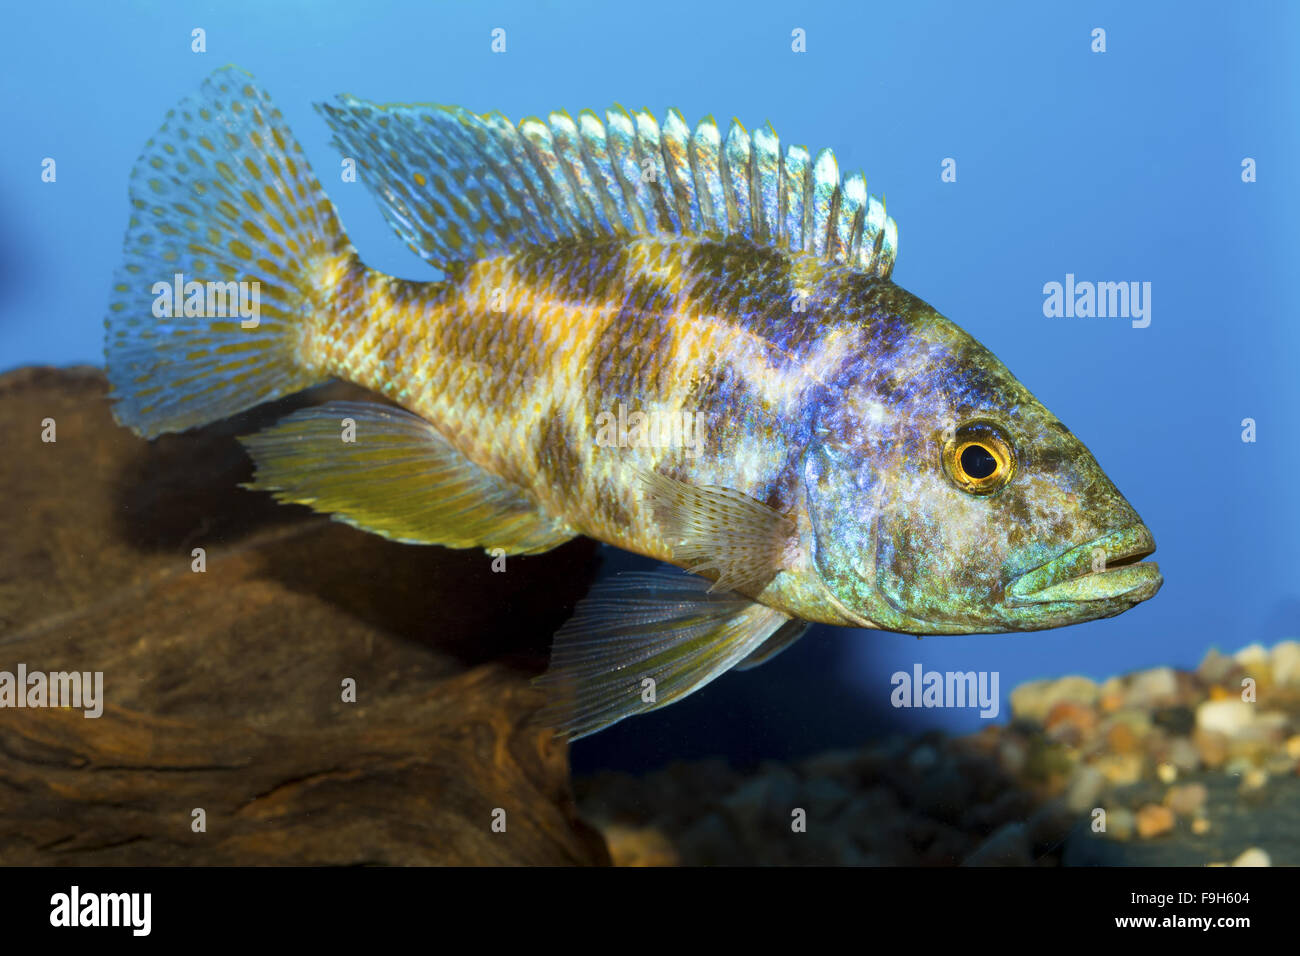 Cichlid fish from genus Nimbochromis in the aquarium Stock Photo